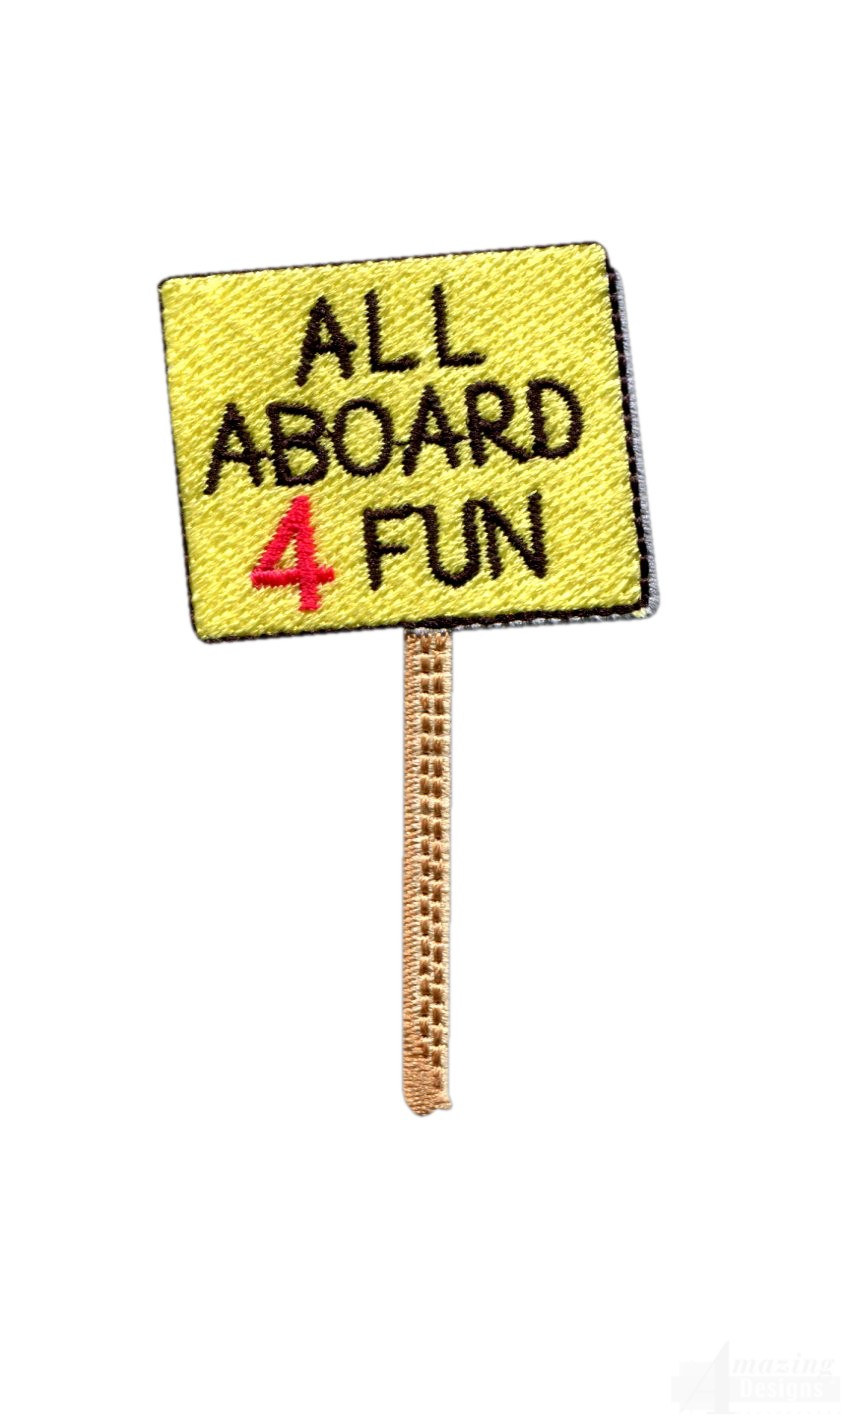 all aboard sign embroidery design